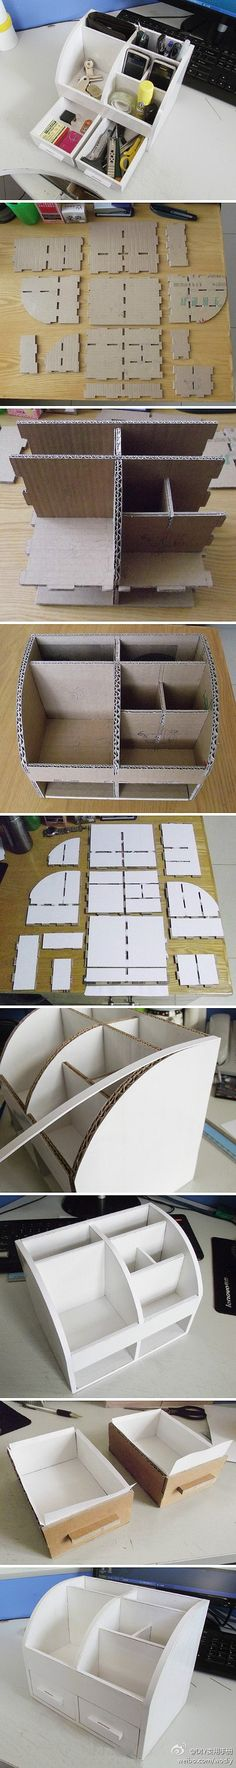 Make your own Cardboard Desk Organizer